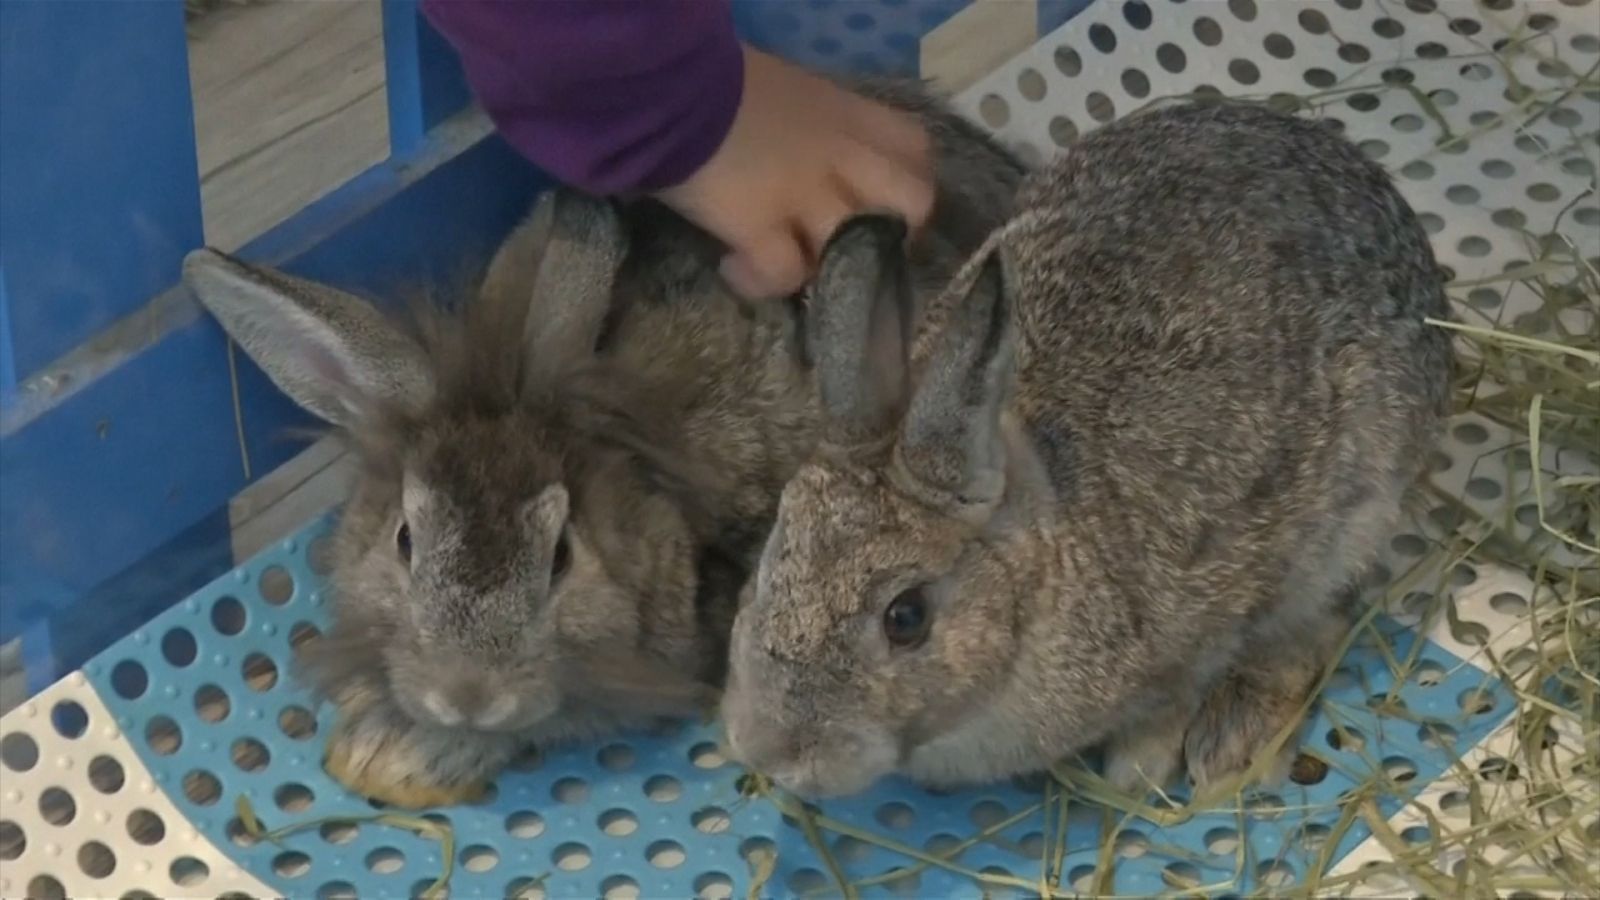 Hong Kong opens first rabbit cafe